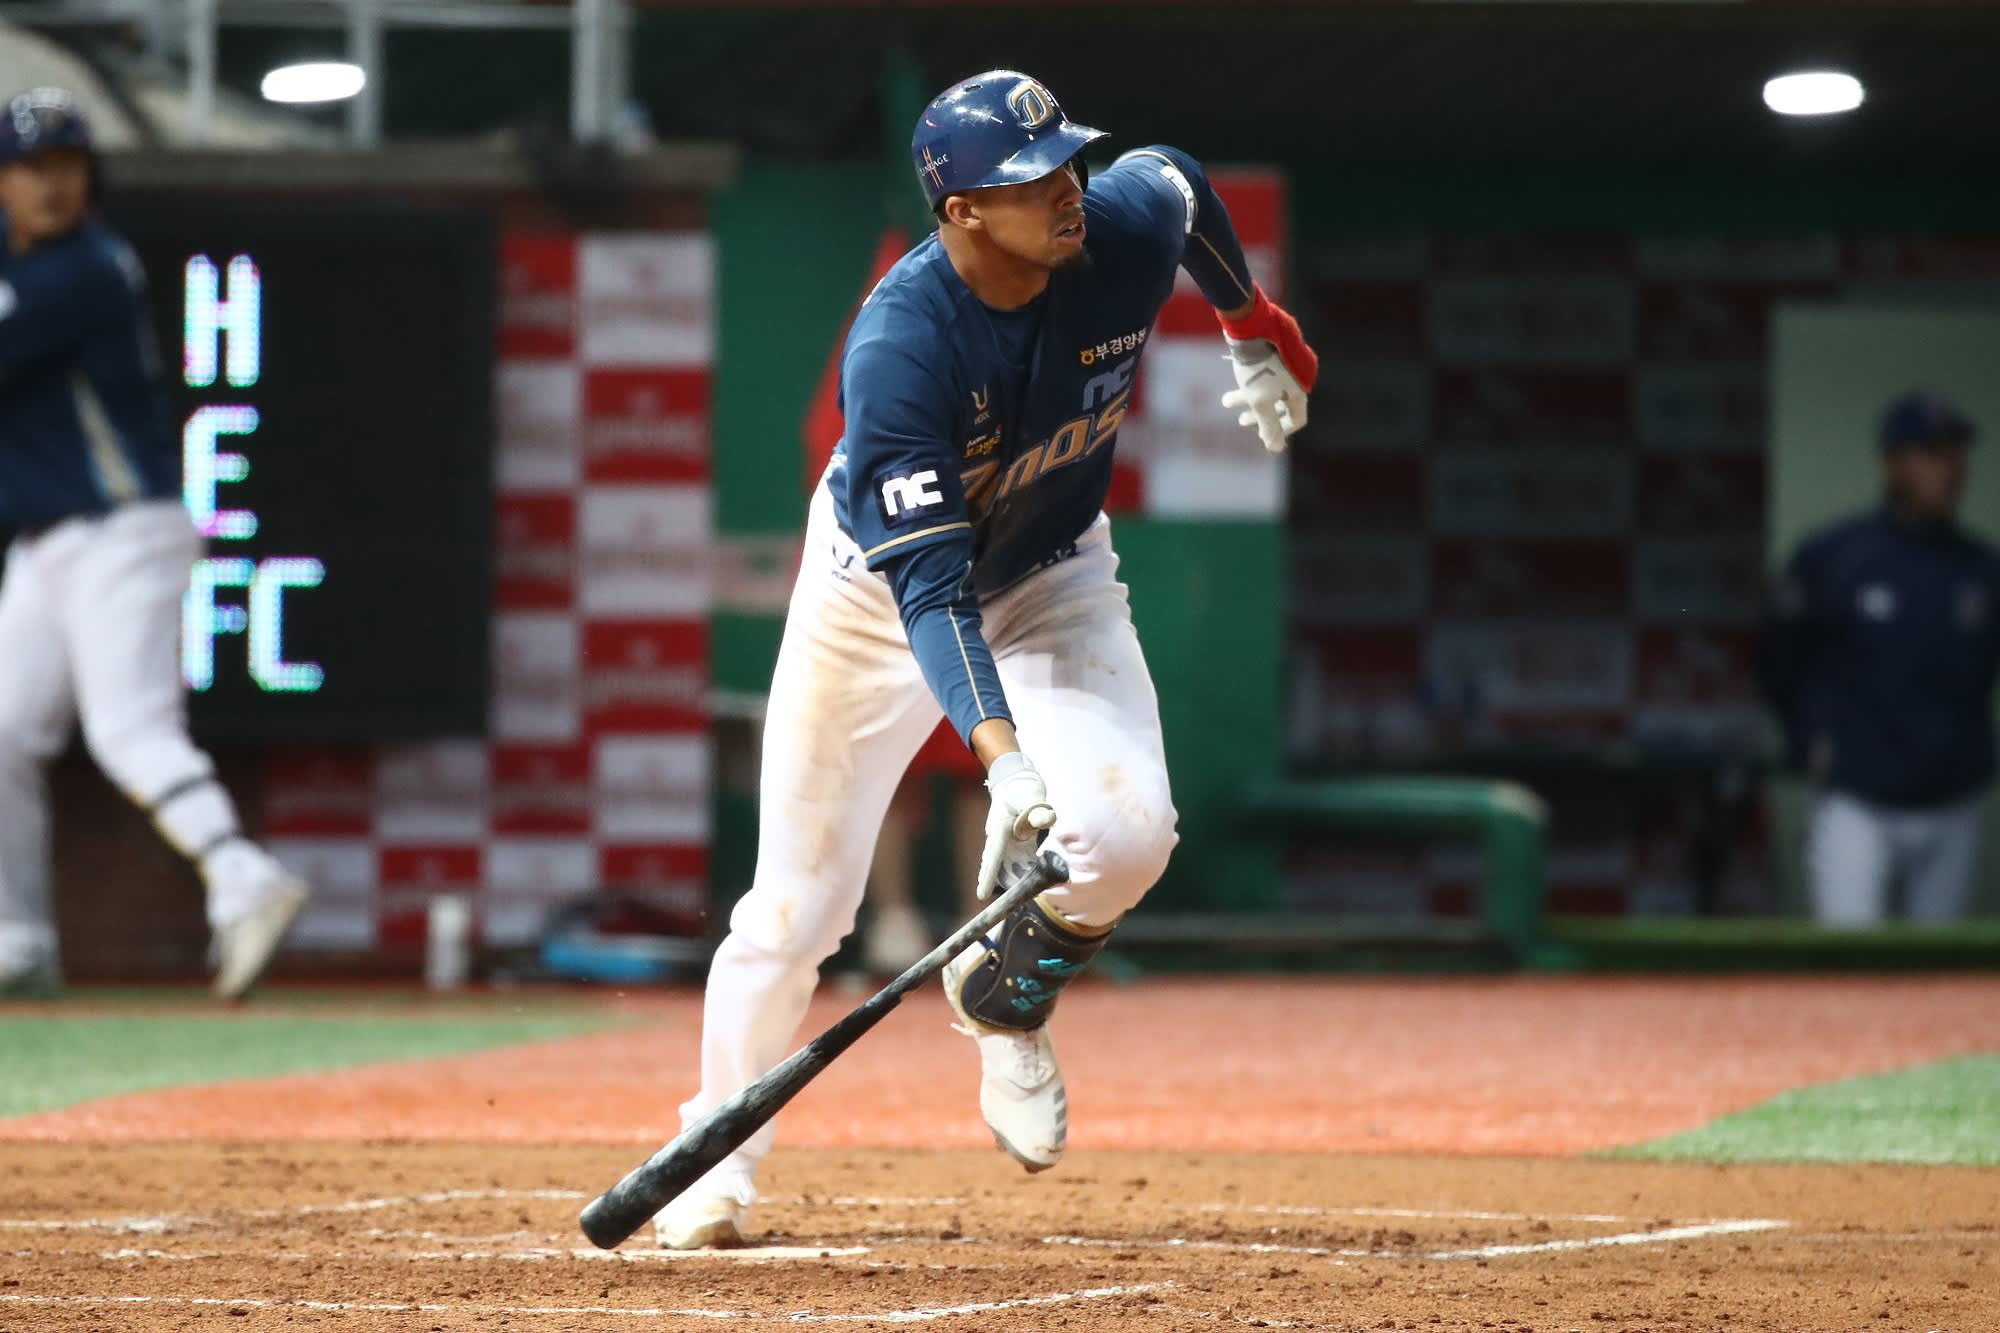 ESPN is airing Korean baseball: What you need to know about the KBO